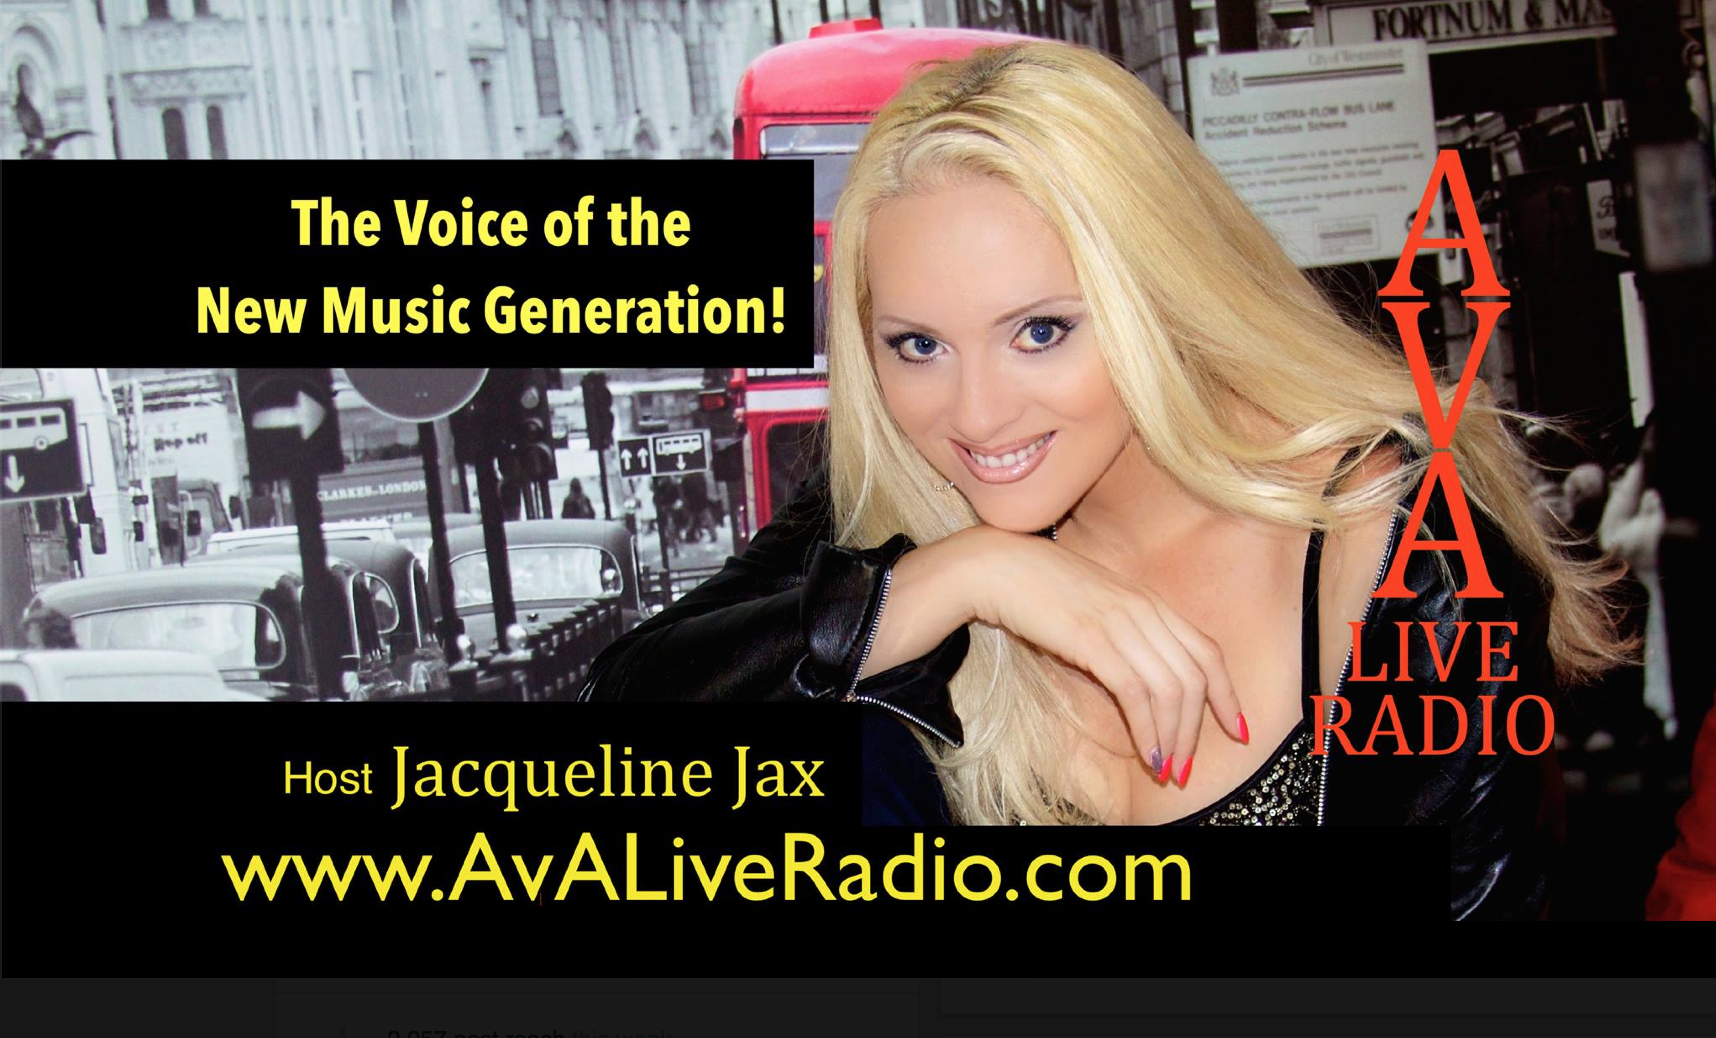 Episode #435: A.V.A Live Radio Behind The Music with Jacqueline Jax